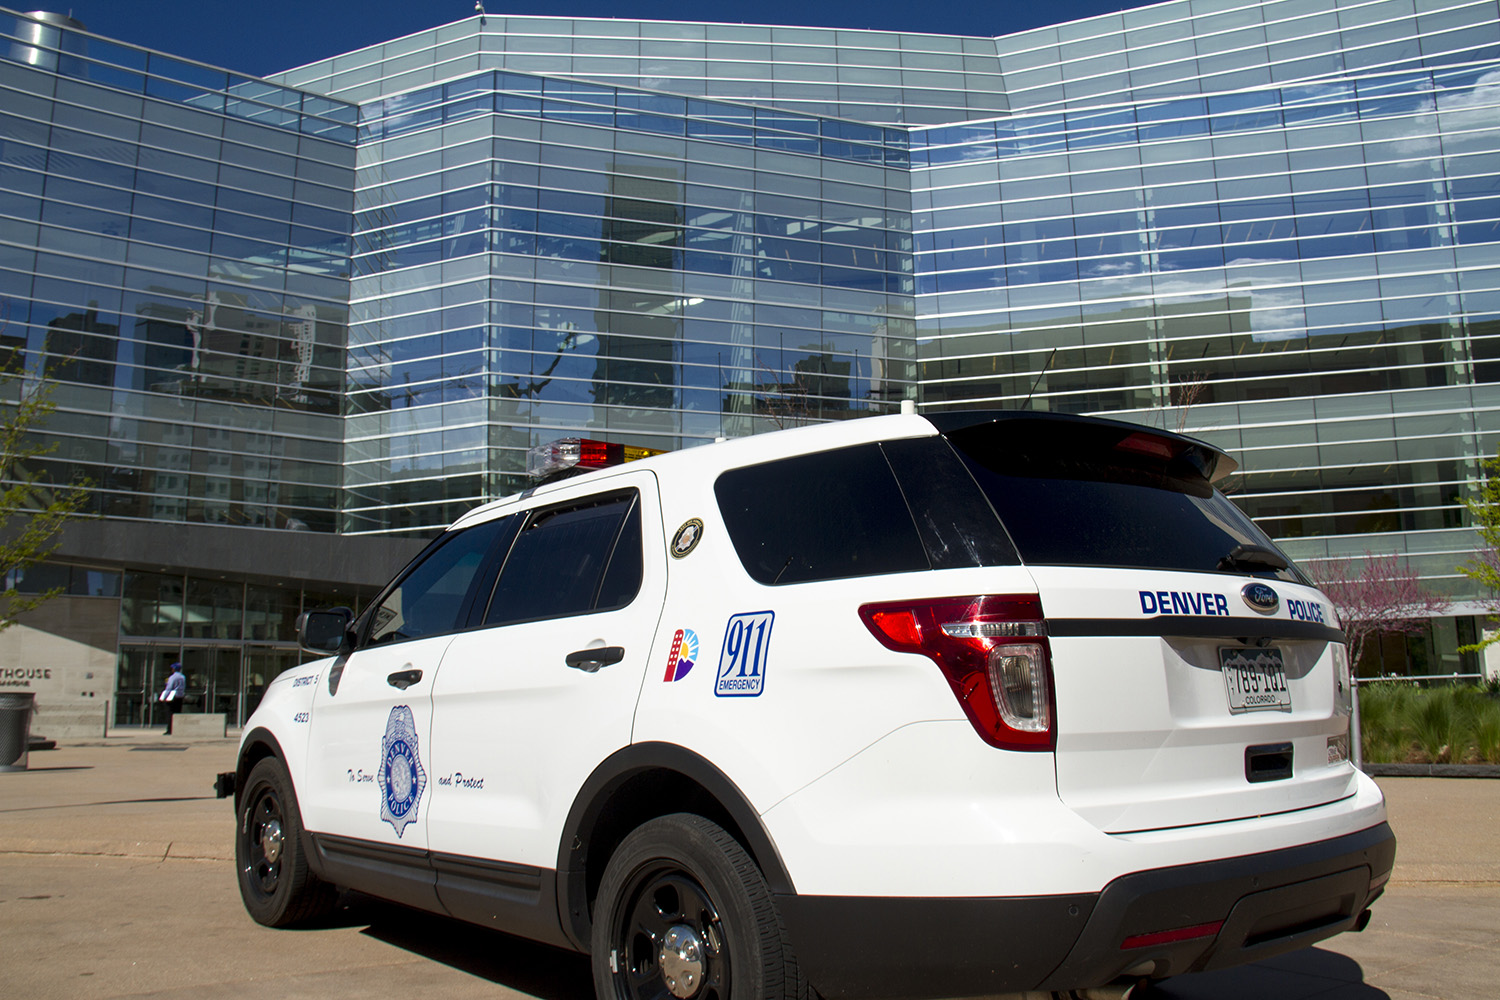 A Denver Police Department car. (Kevin J. Beaty/Denverite)